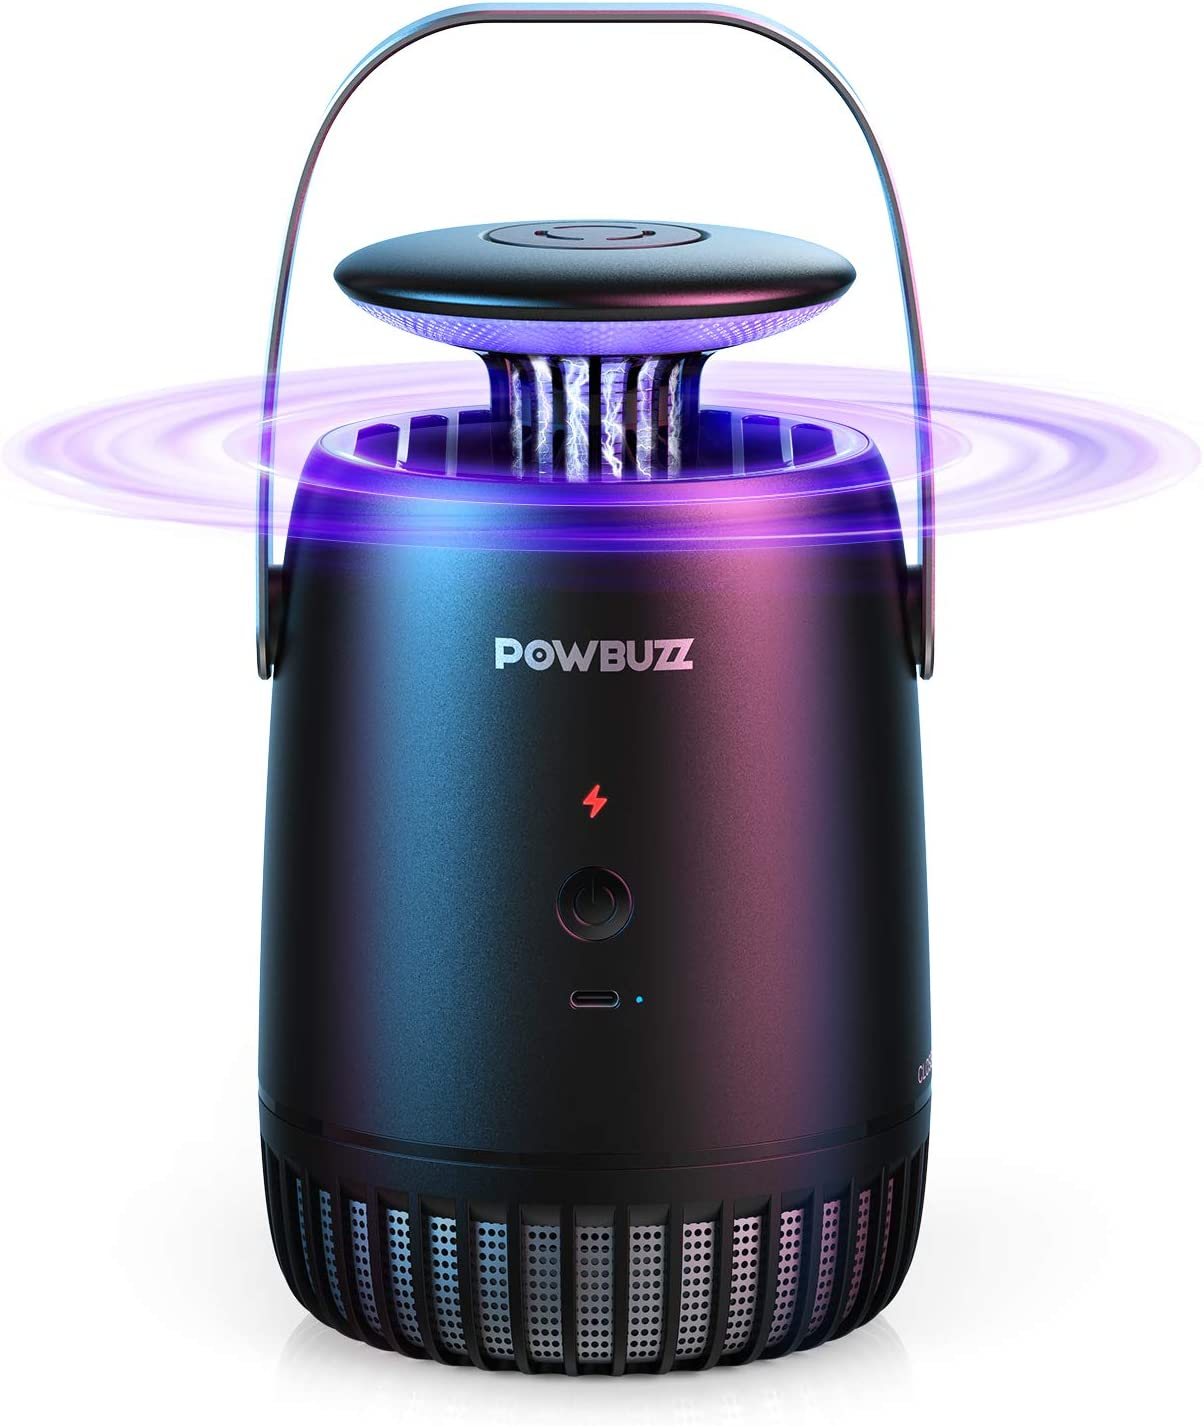 POWBUZZ Electric Bug Zapper for Indoor Home, Outdoor Patio – Mosquito Killer Trap Lamp Flyswatter Catcher for Insect & Pest Control, Bite Defense Outside – Kills Gnats, Fruit Flies, Moths, Mosquitoes